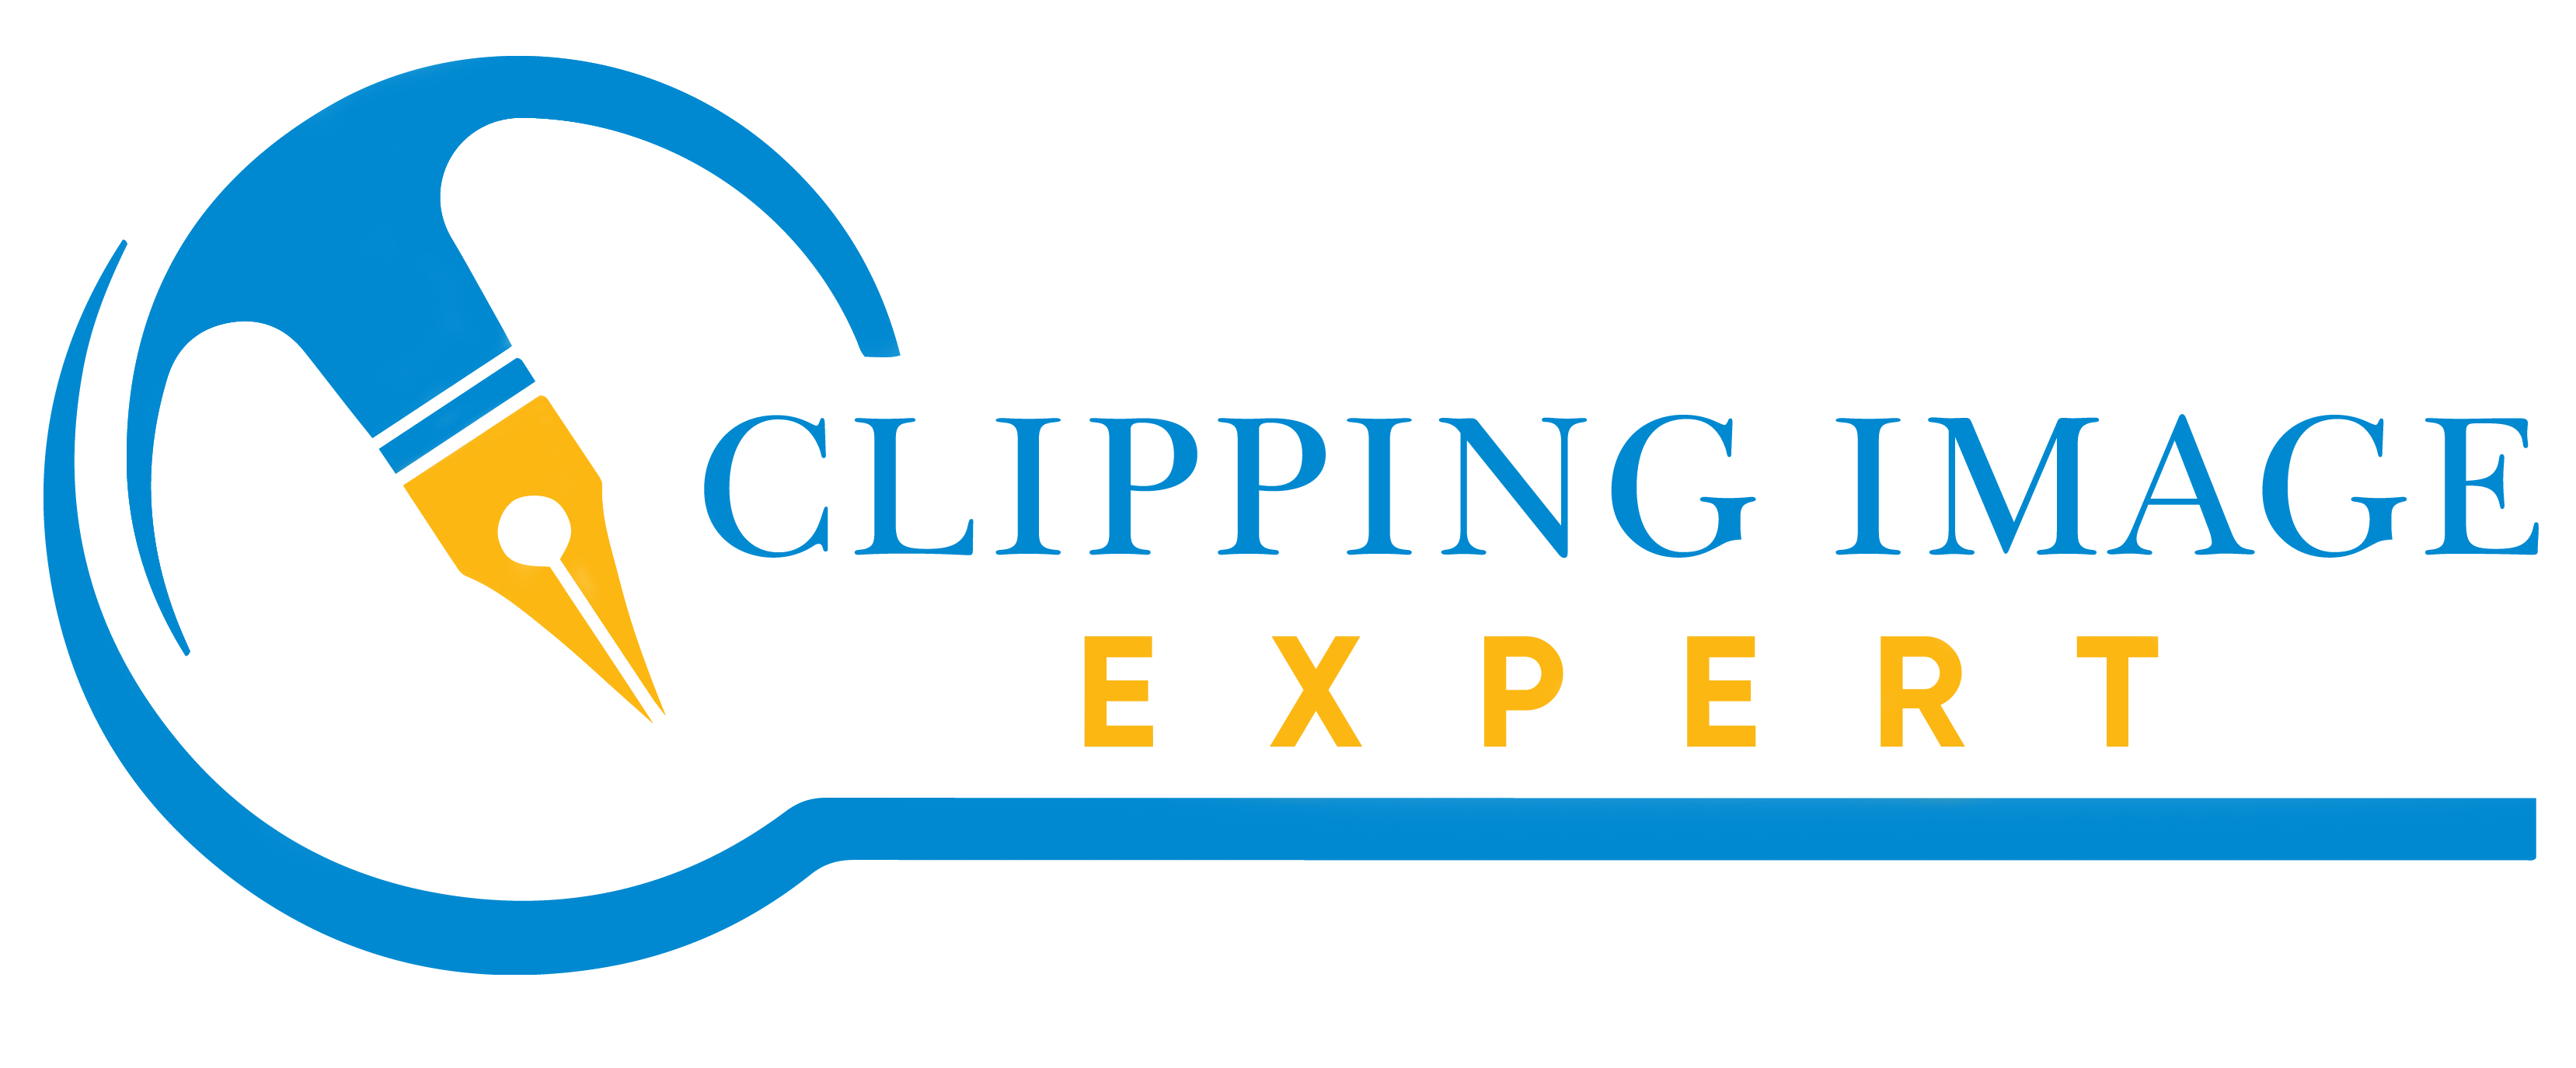 Clipping Image Expert